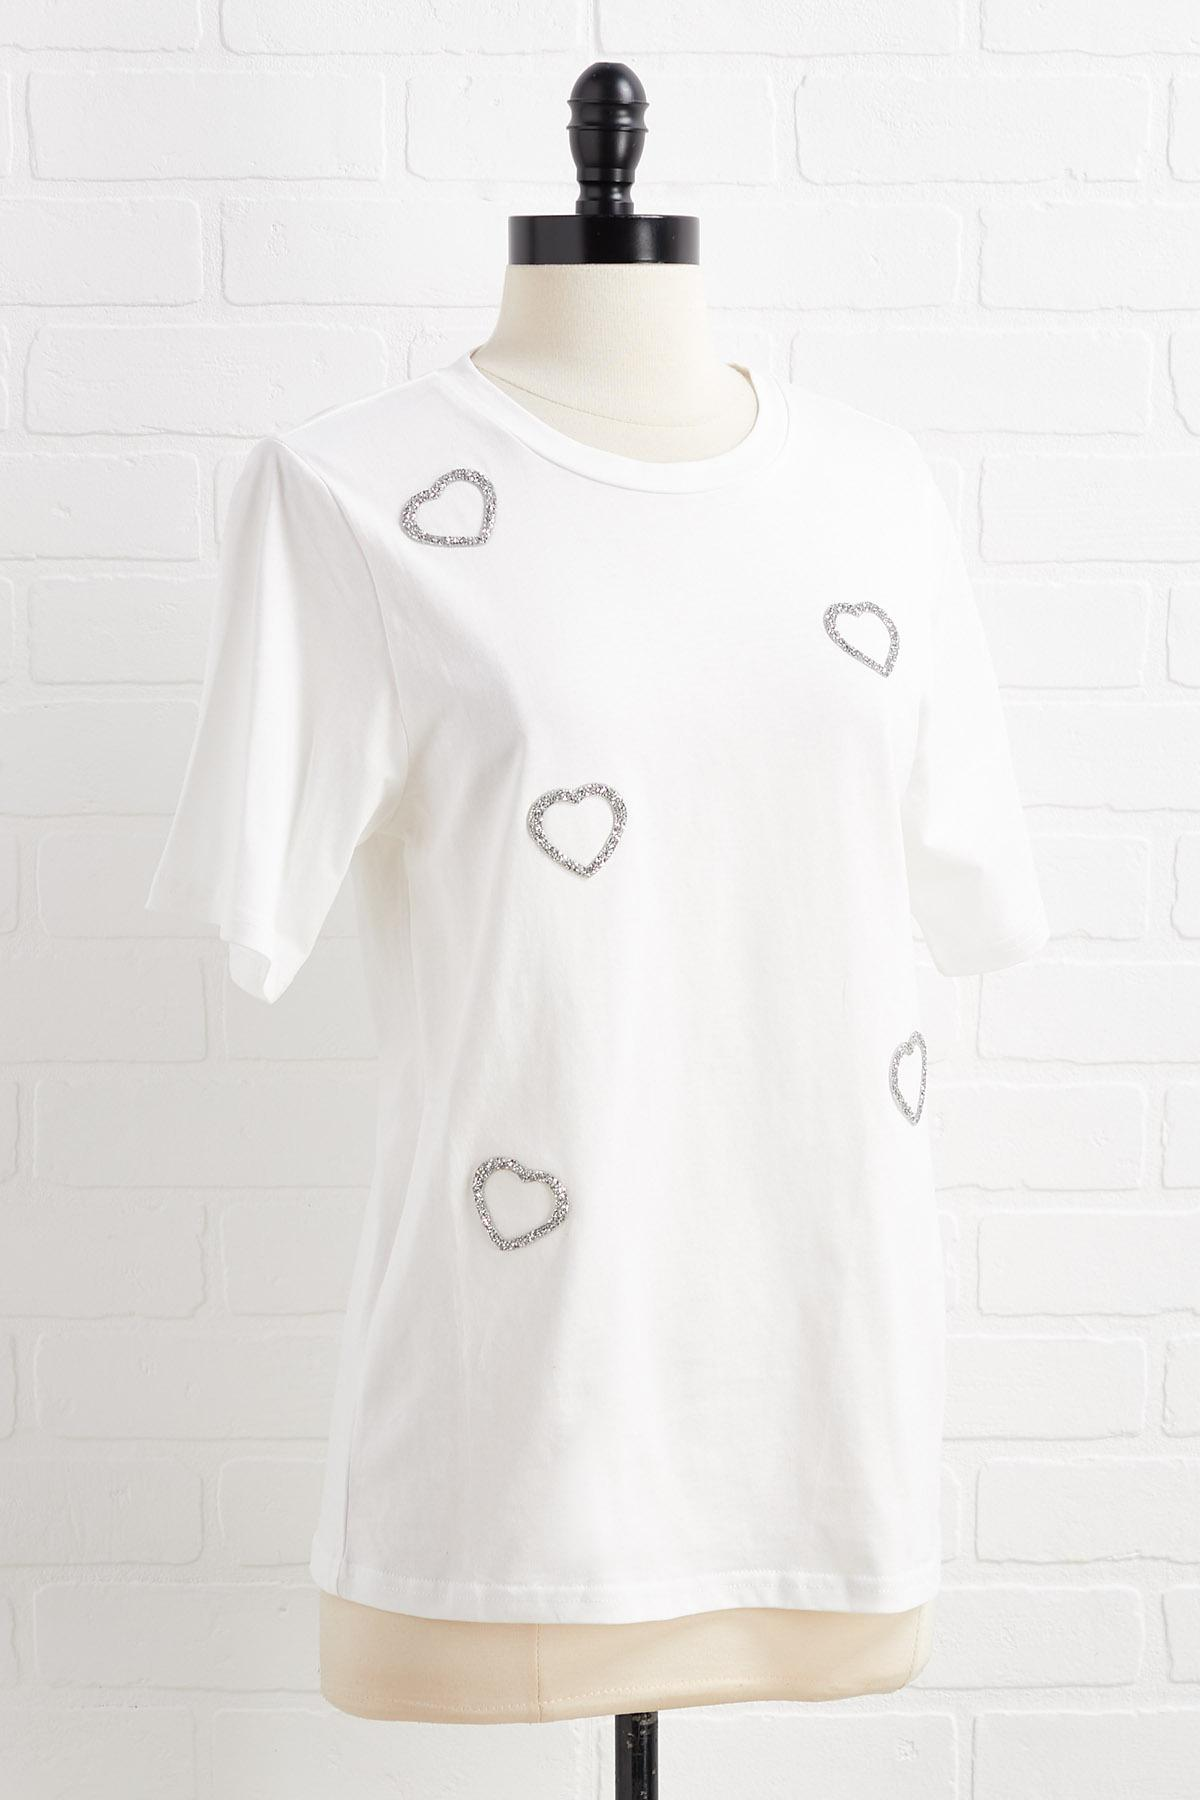 Wear Your Heart On Your Tee Shirt